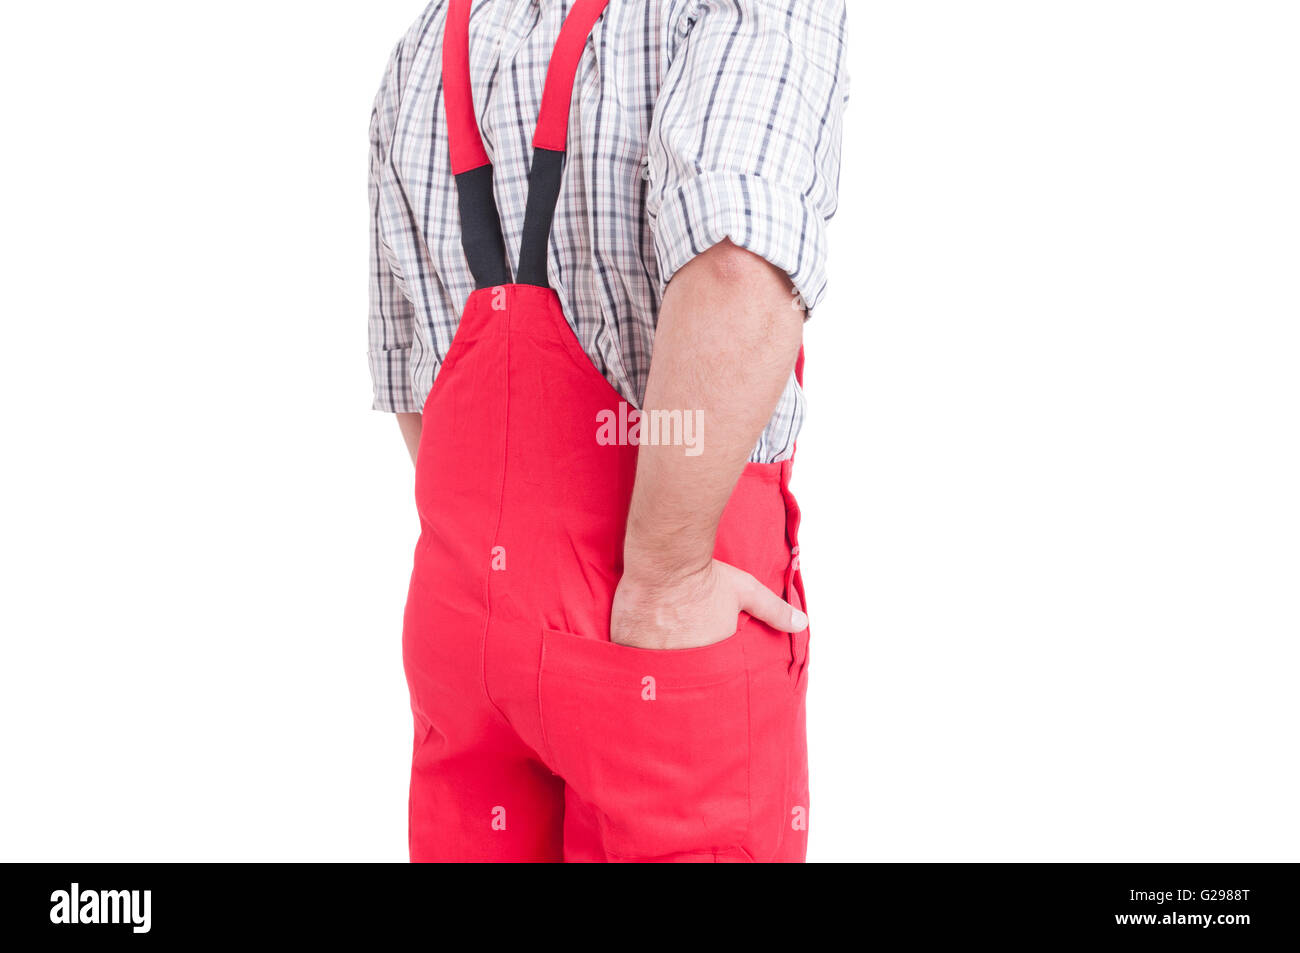 man holding hand inside back pocket of rompers or coveralls isolatd on white - Stock Image